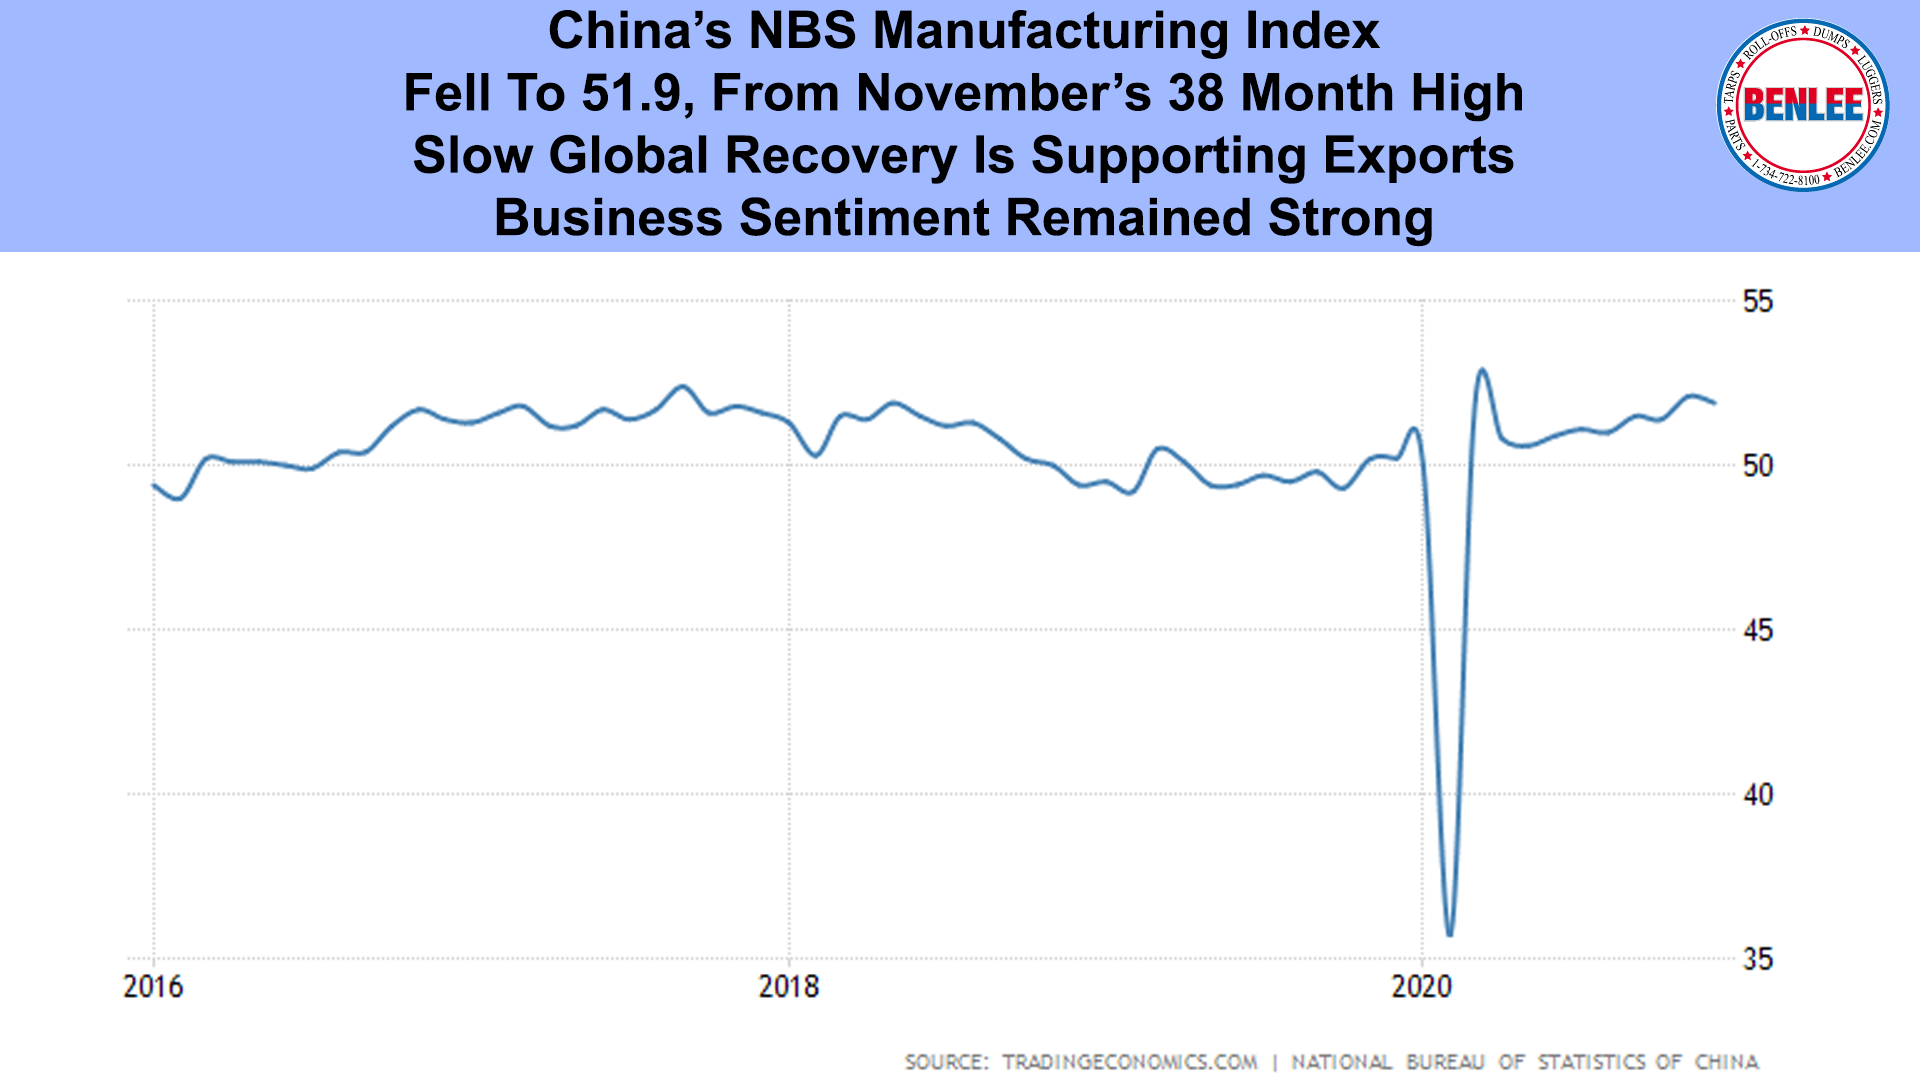 China's NBS Manufacturing Index